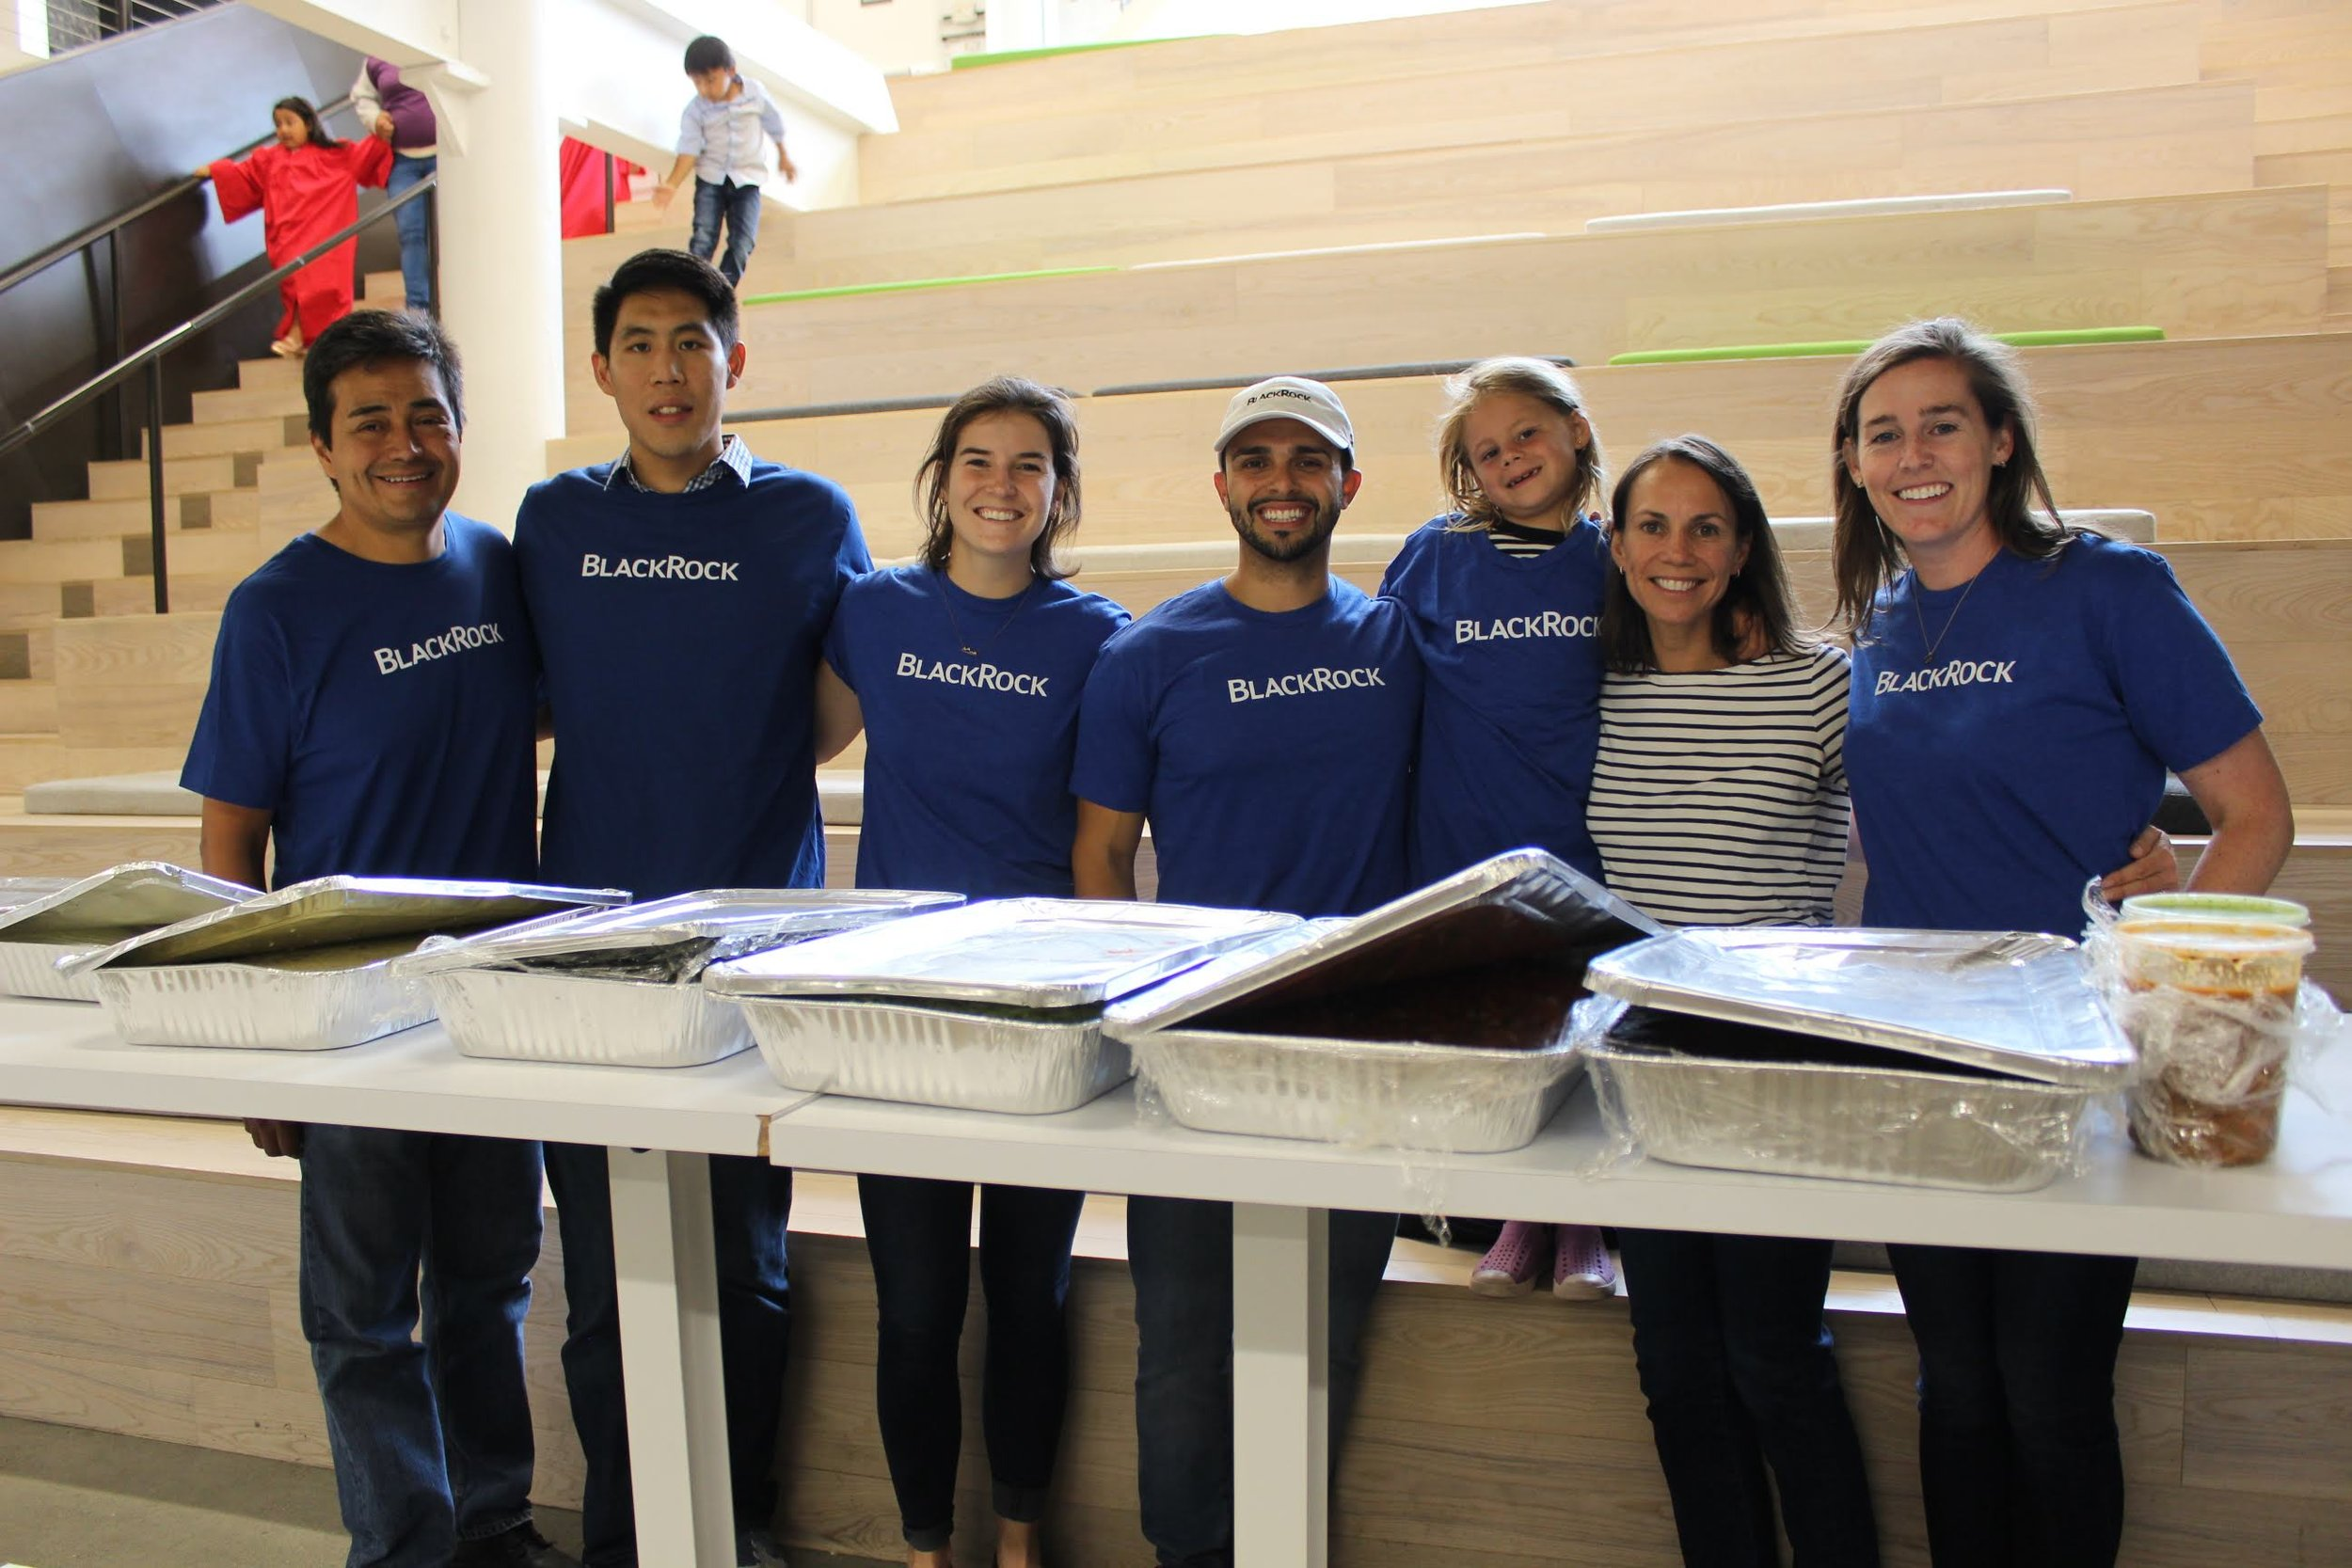 A huge thanks to BlackRock for their continued support of Compass programs and coming out to volunteer serving dinner after the ceremony.